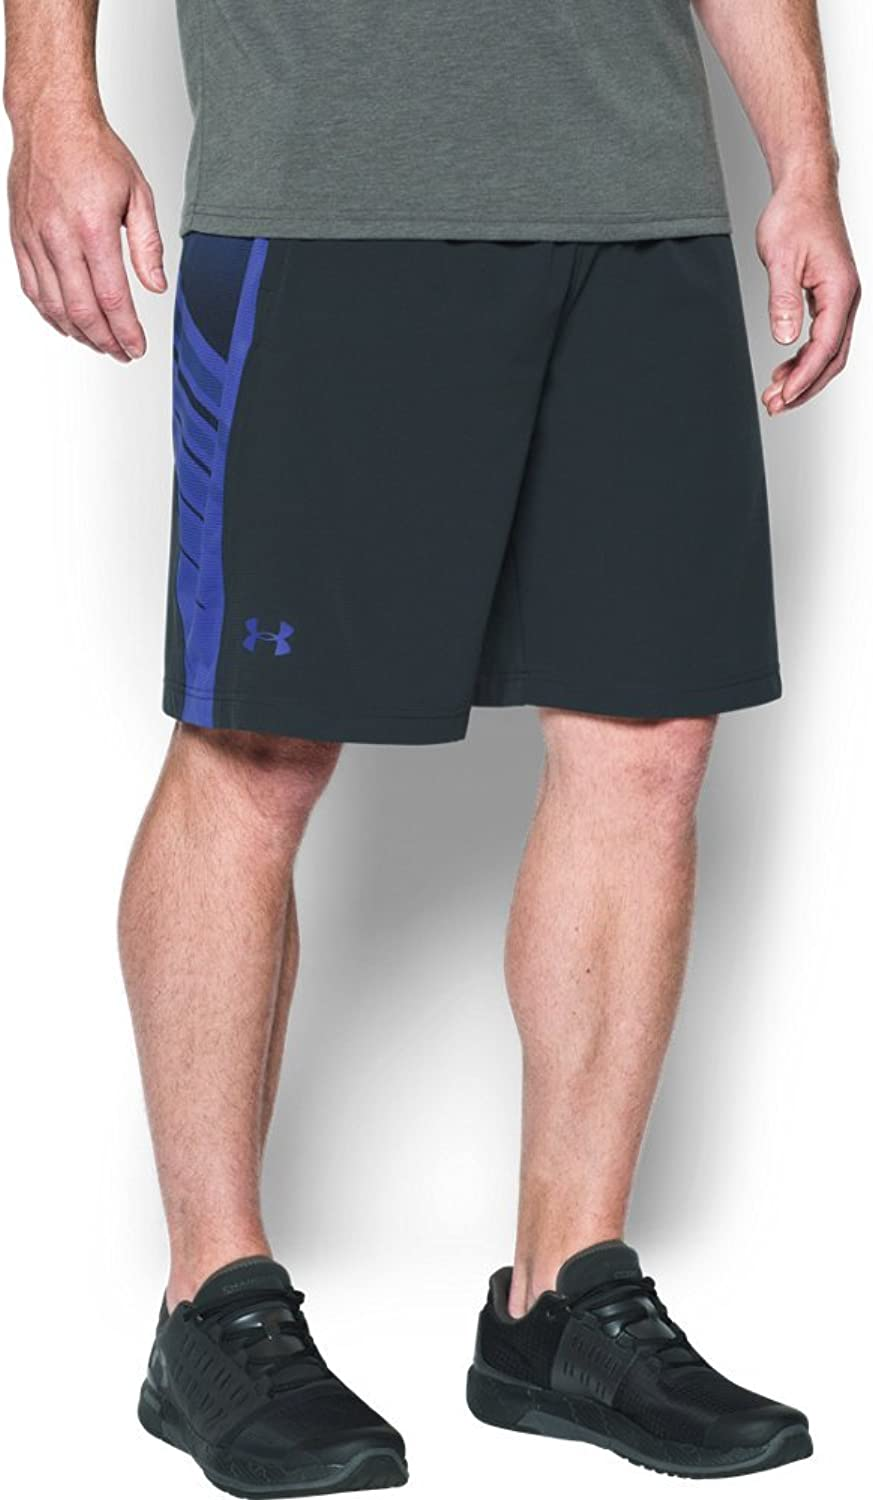 Under Armour Men's Supervent Woven Short, Anthracite/紫の, LG x One Size